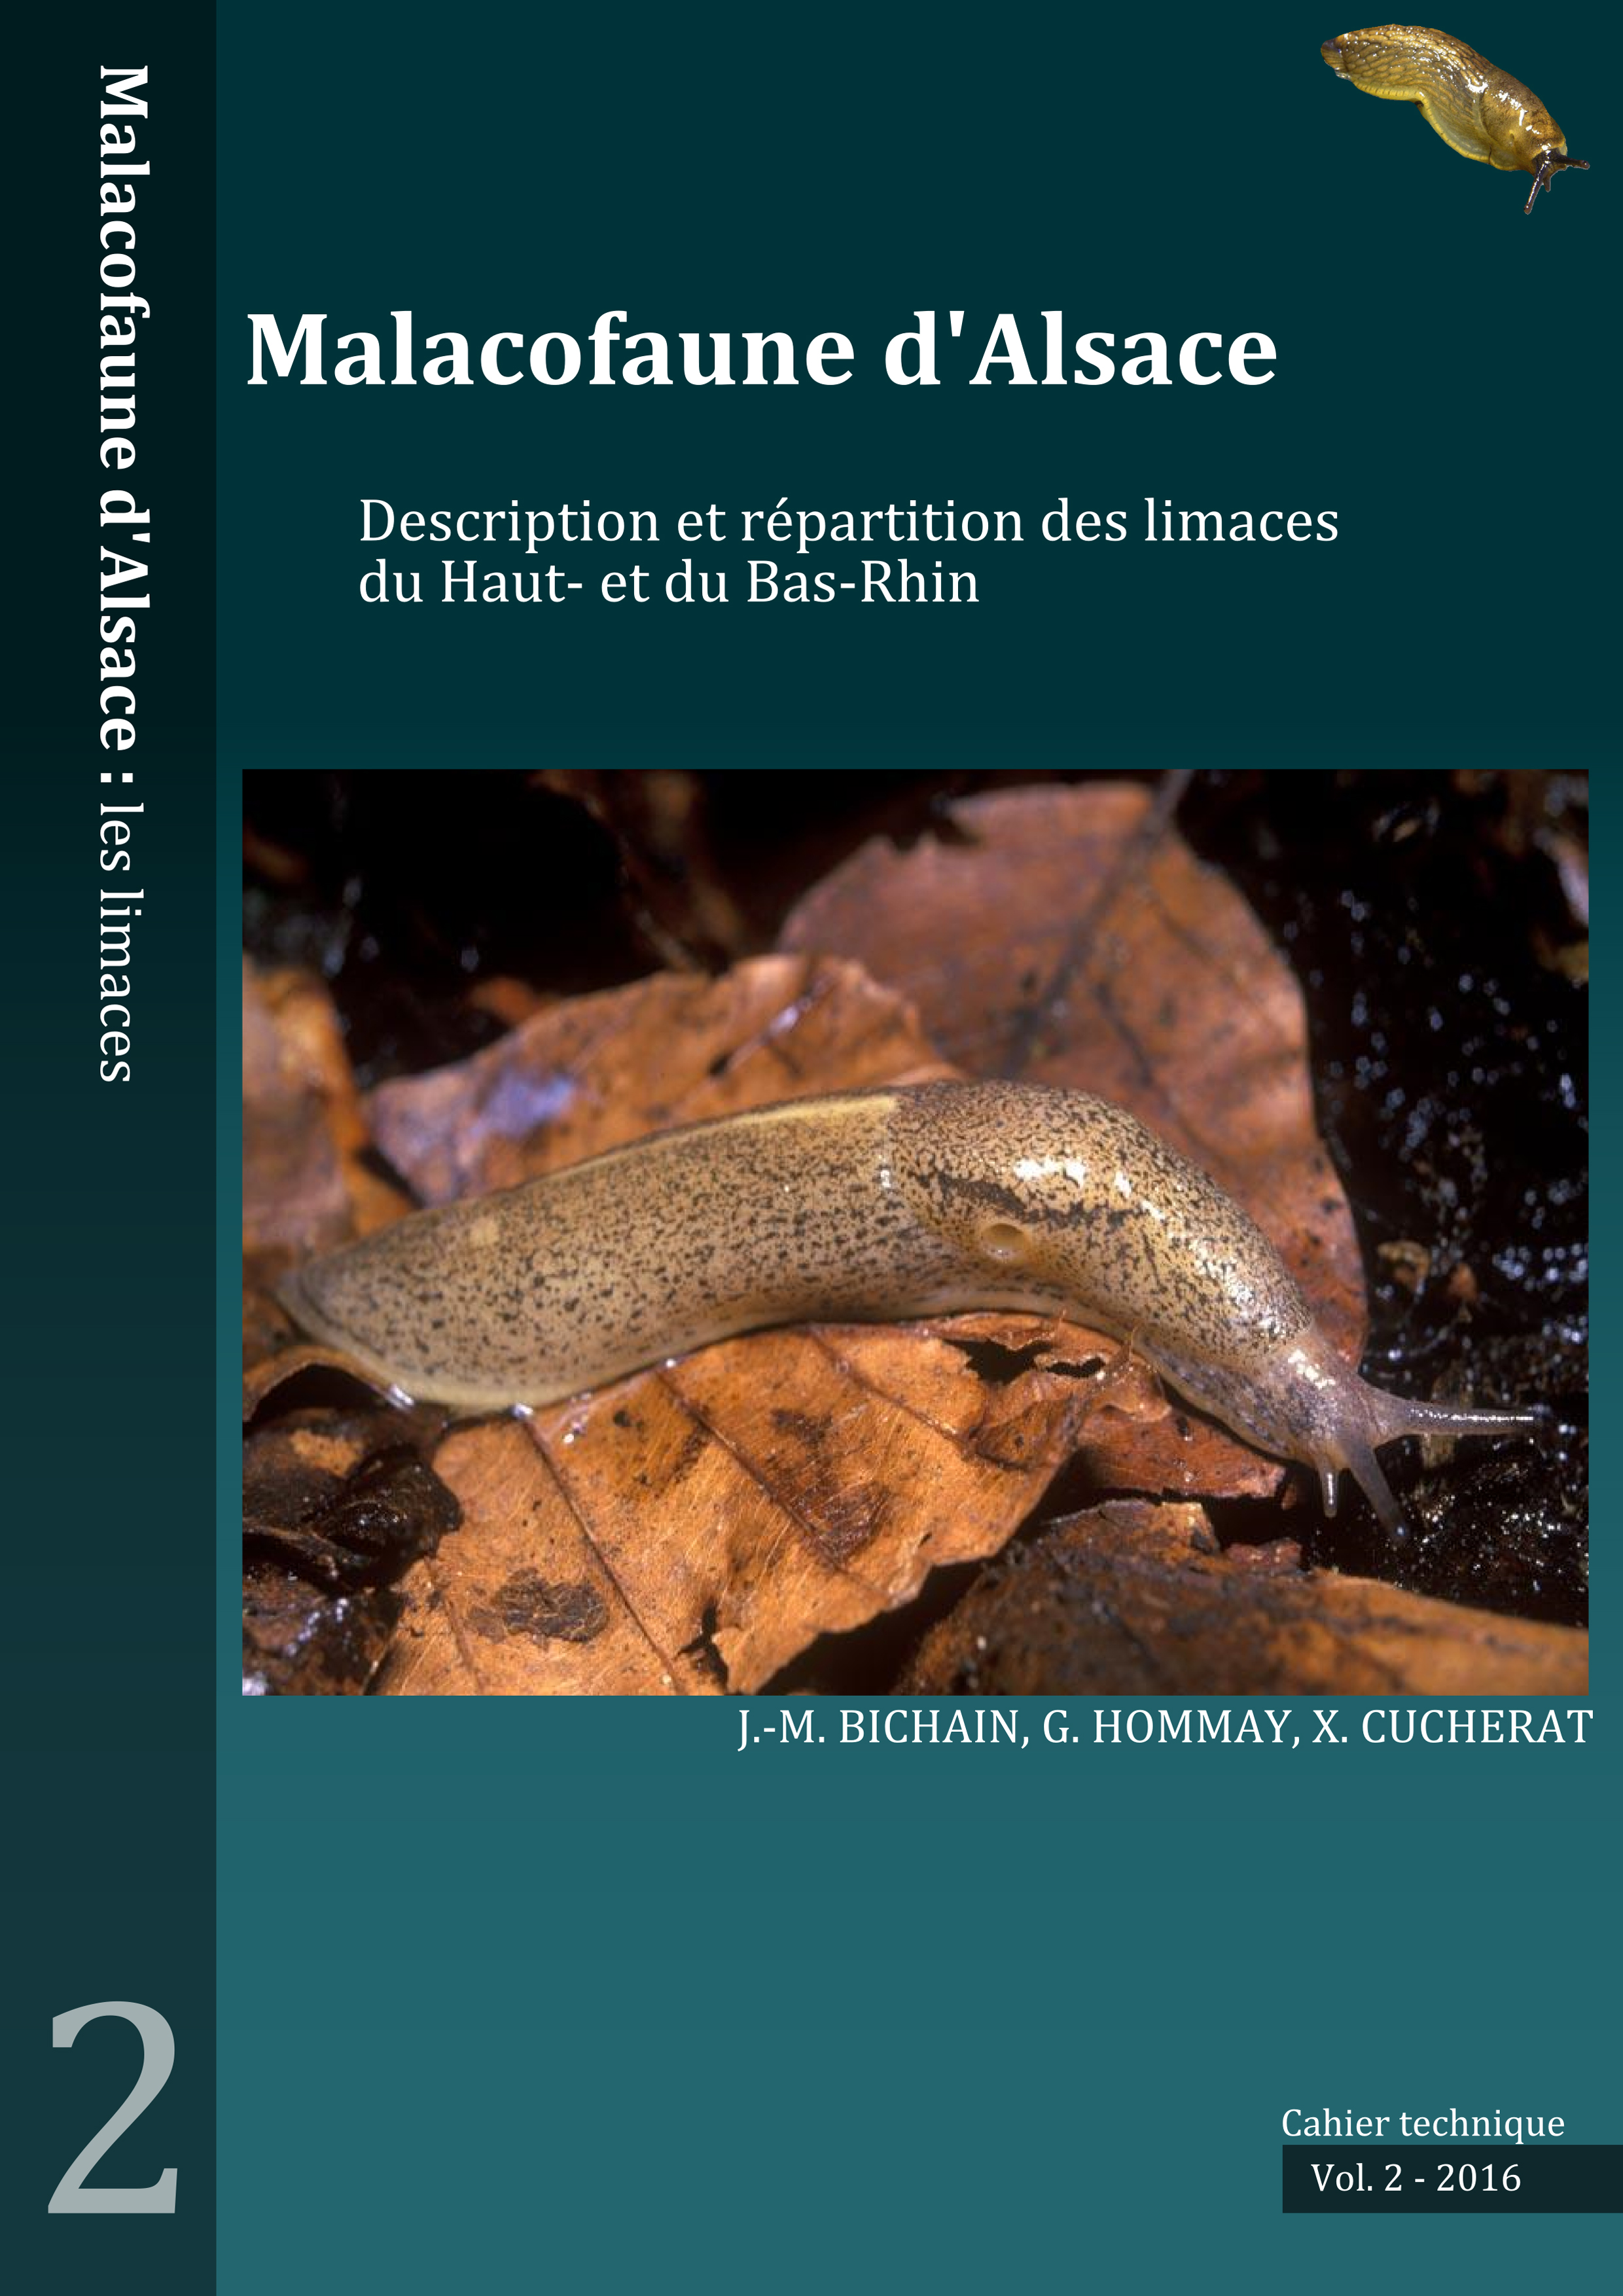 http://files.biolovision.net/www.faune-alsace.org/userfiles/mollusques/limace2016.jpg